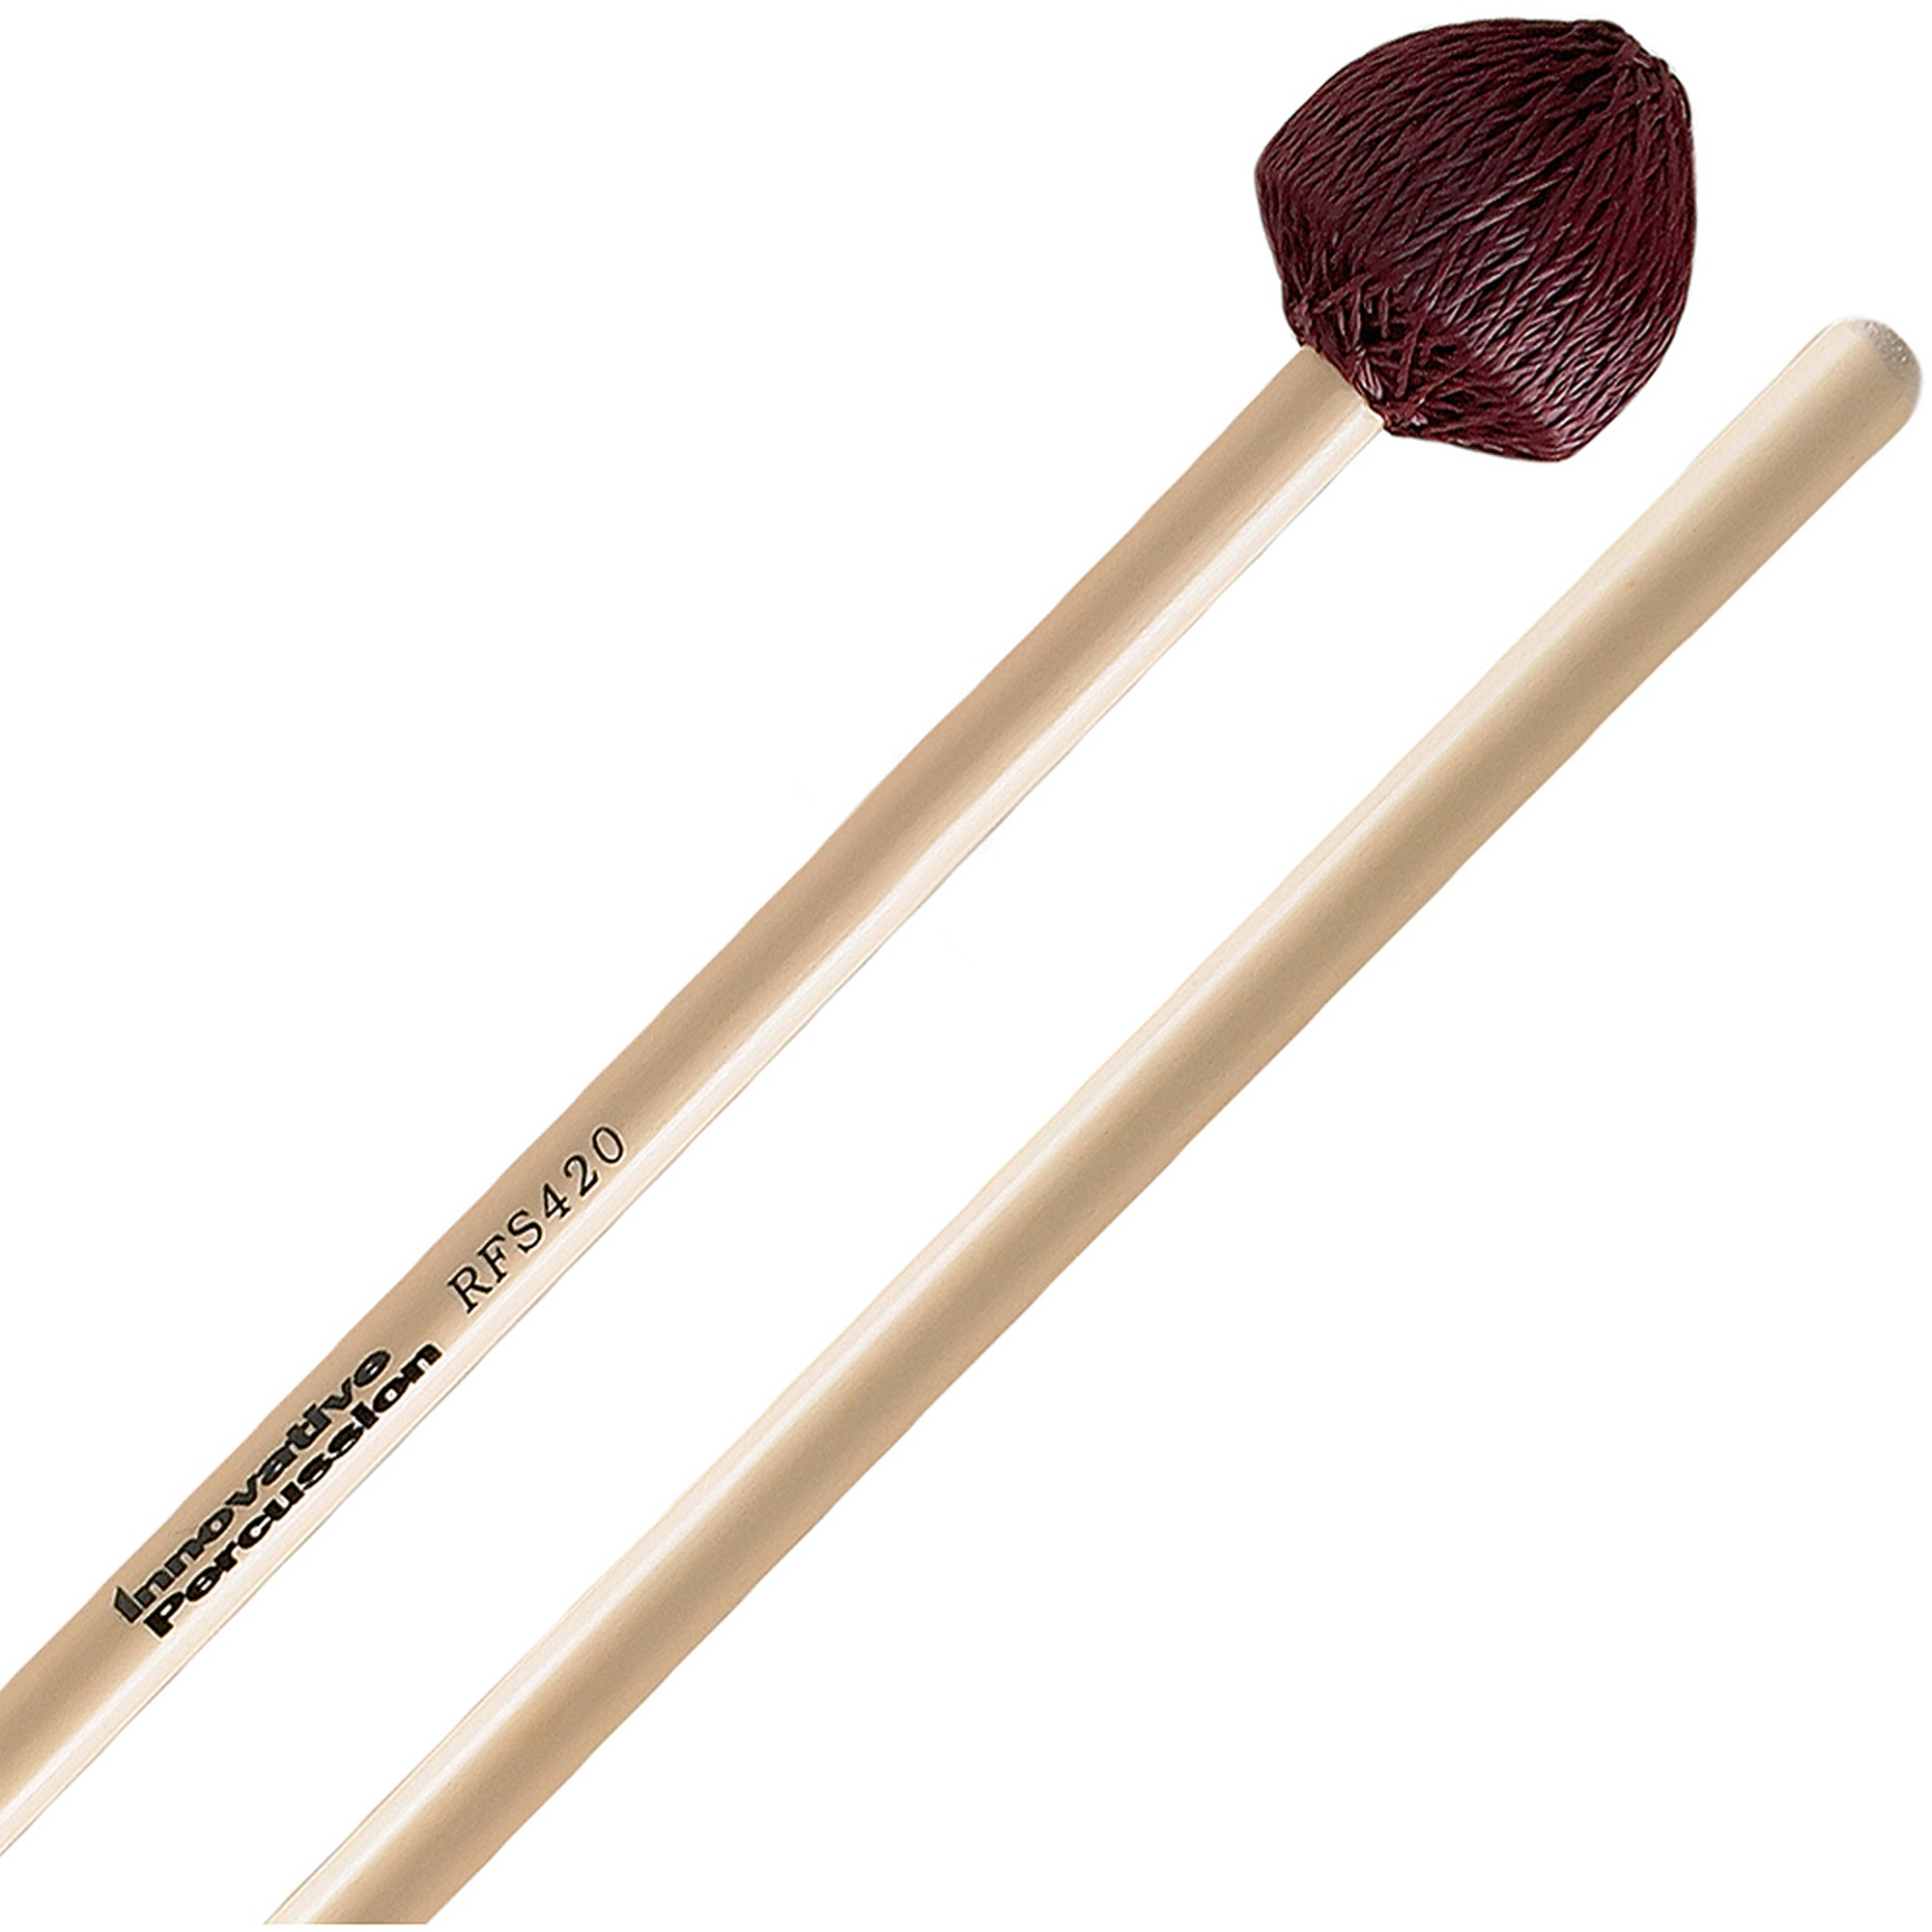 Innovative Percussion RFS420 Field Series Hard Vibraphone Mallets with Rattan Handles by Innovative Percussion